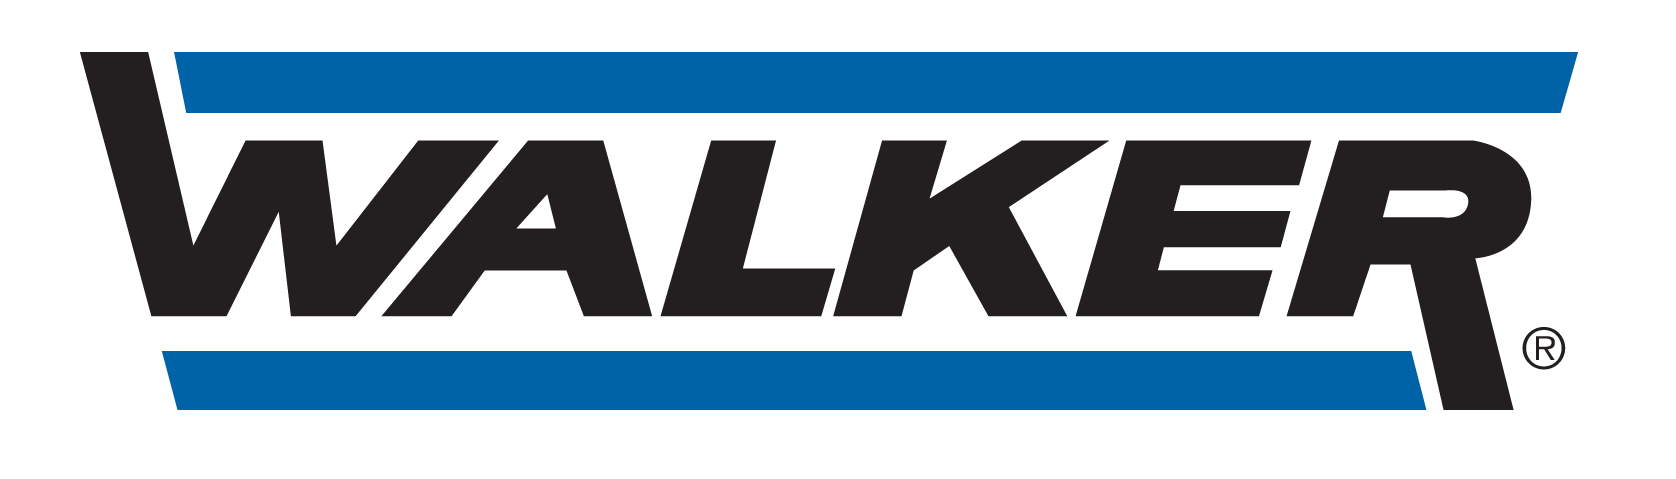 CARROSSERIE ENRIETTO - logo Walker